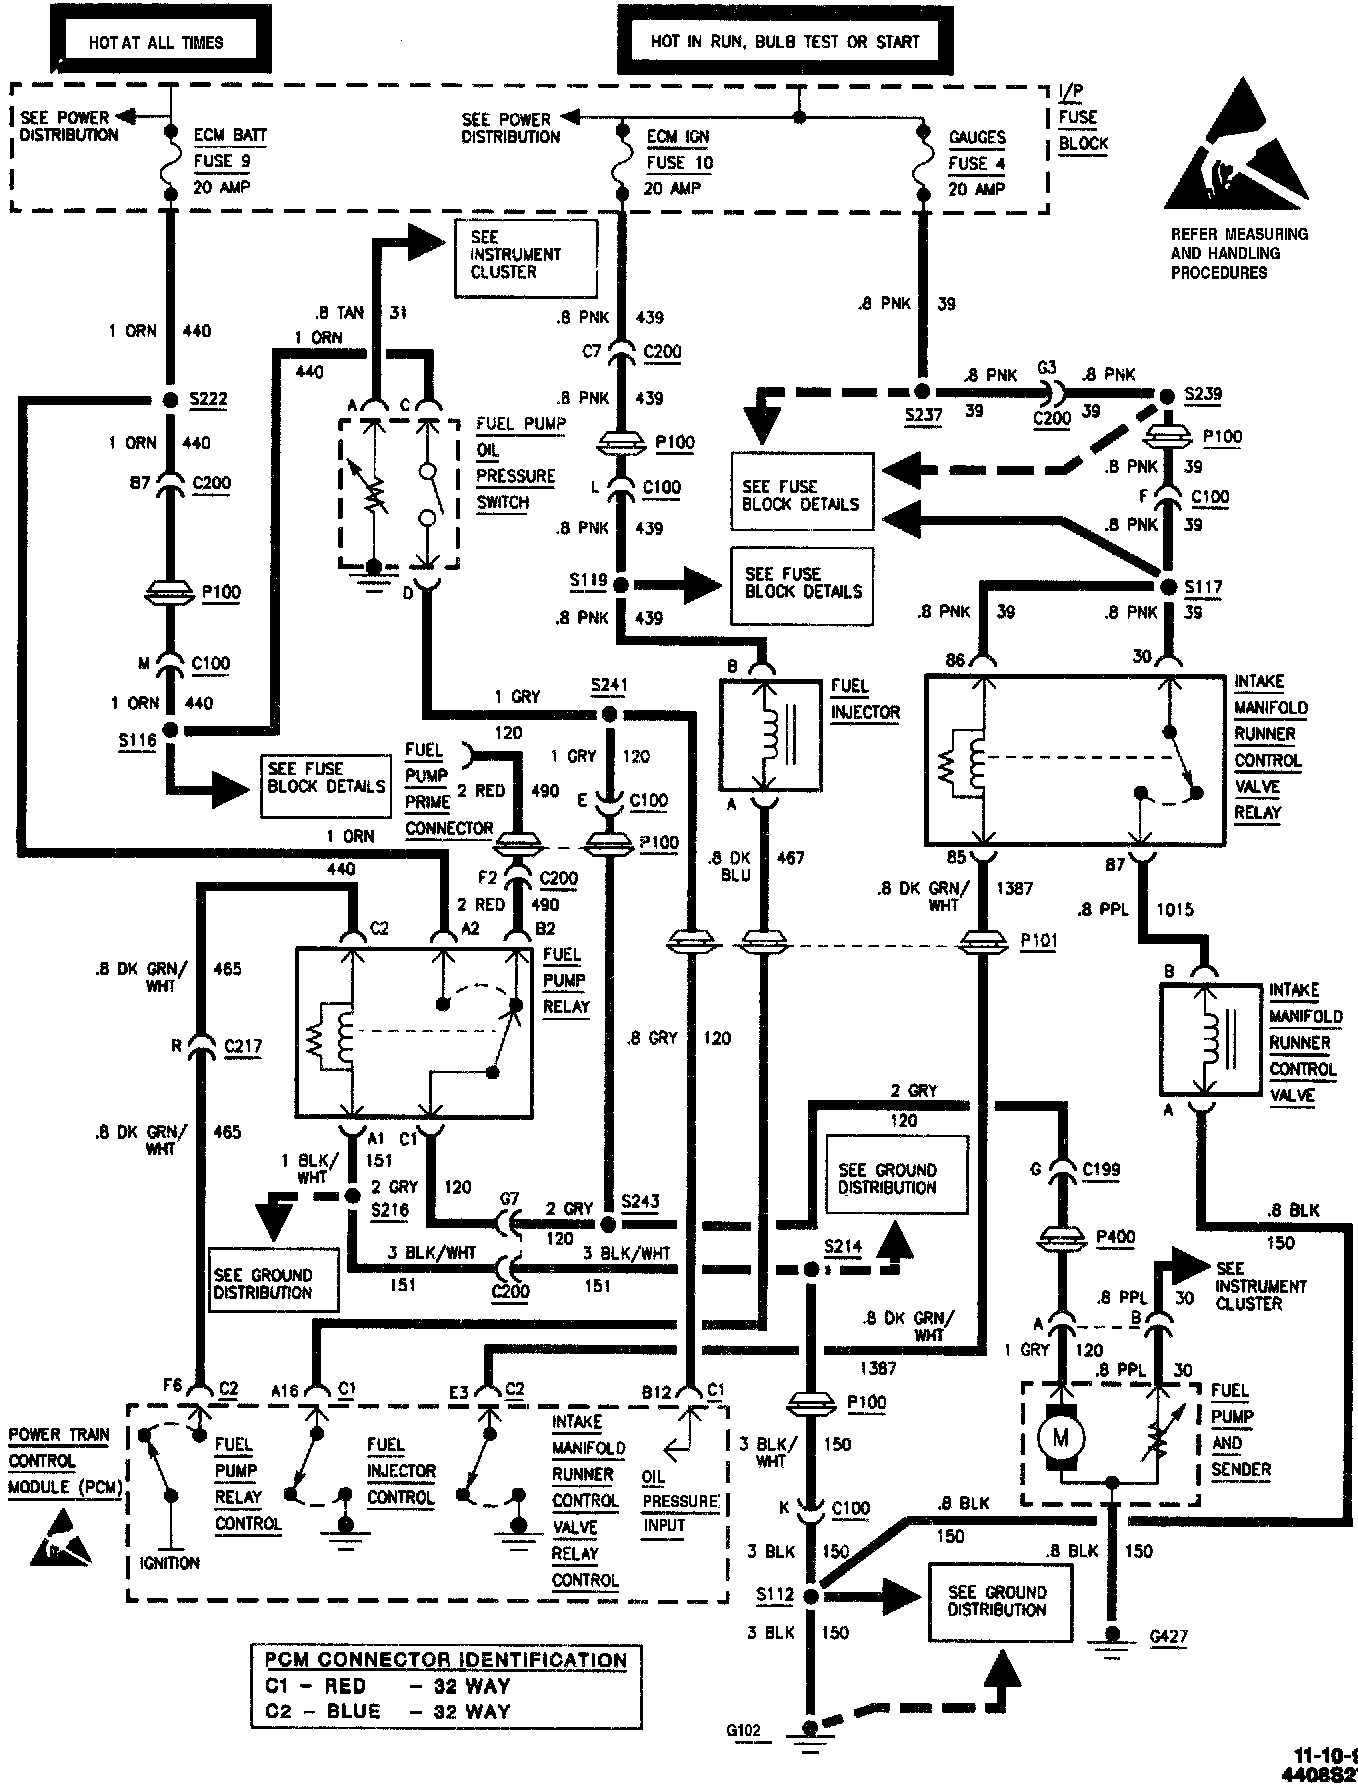 1999 S10 Zr2 Diagrama Del Motor Auto Electrical Wiring Diagram Ford 3400 Tractor 2005 Chevy Trailblazer Fuel Pump